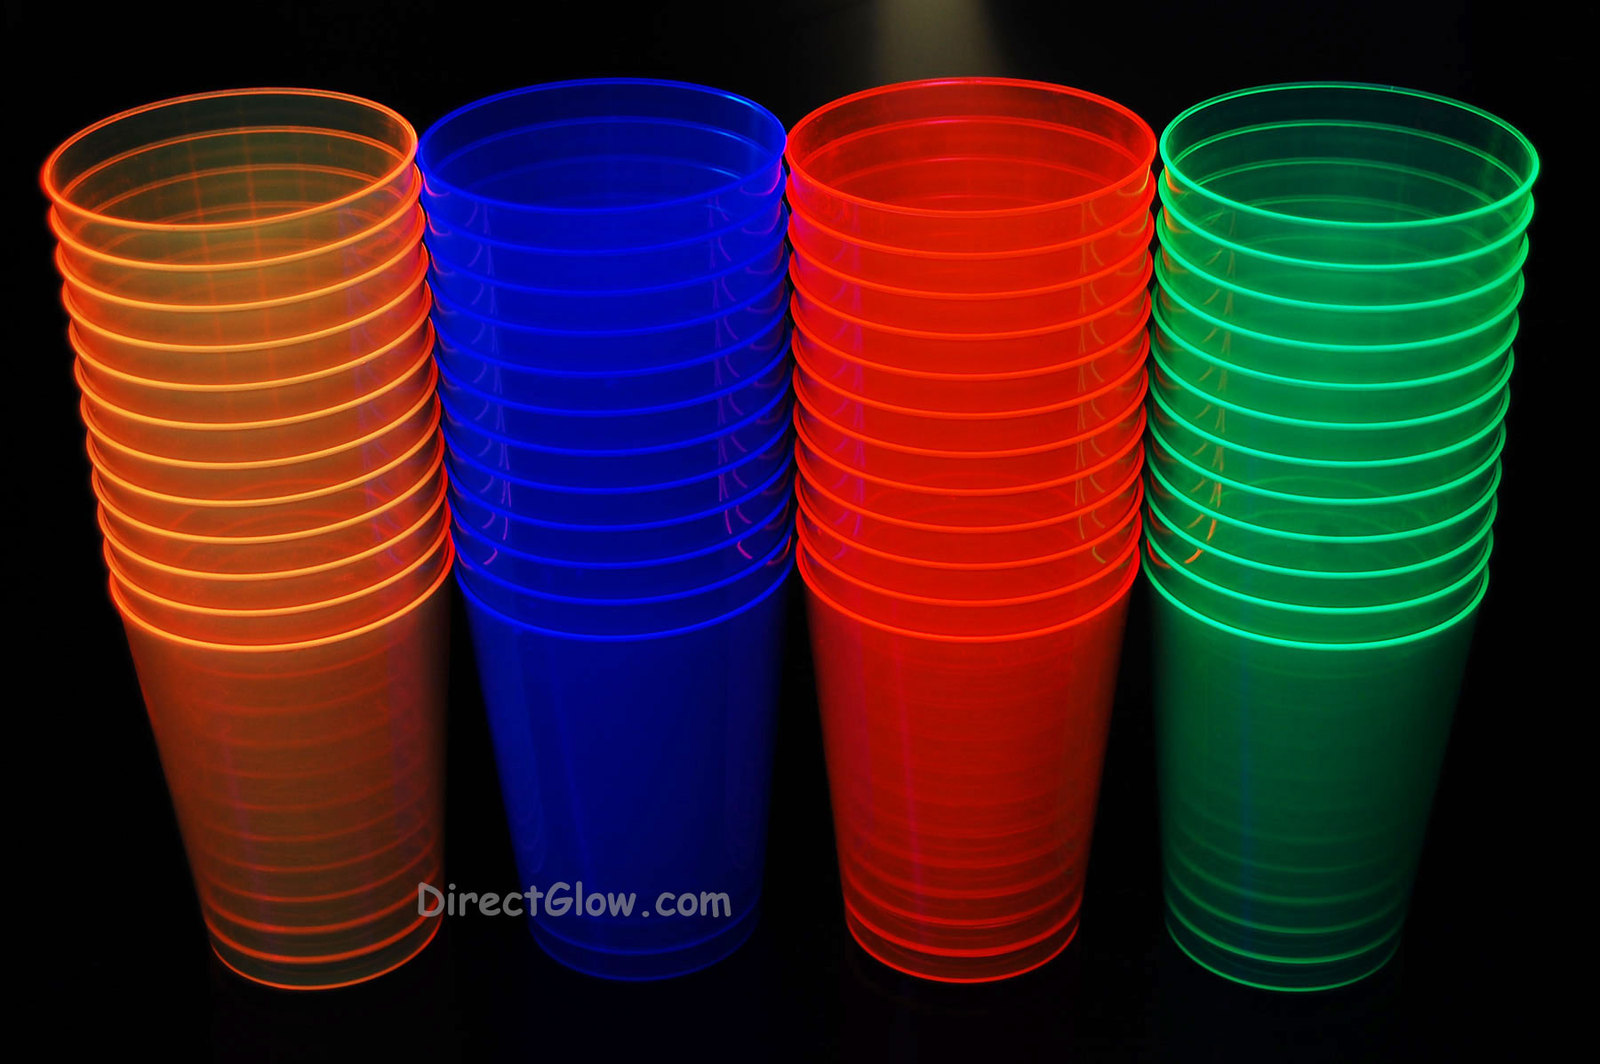 10oz assorted cups5